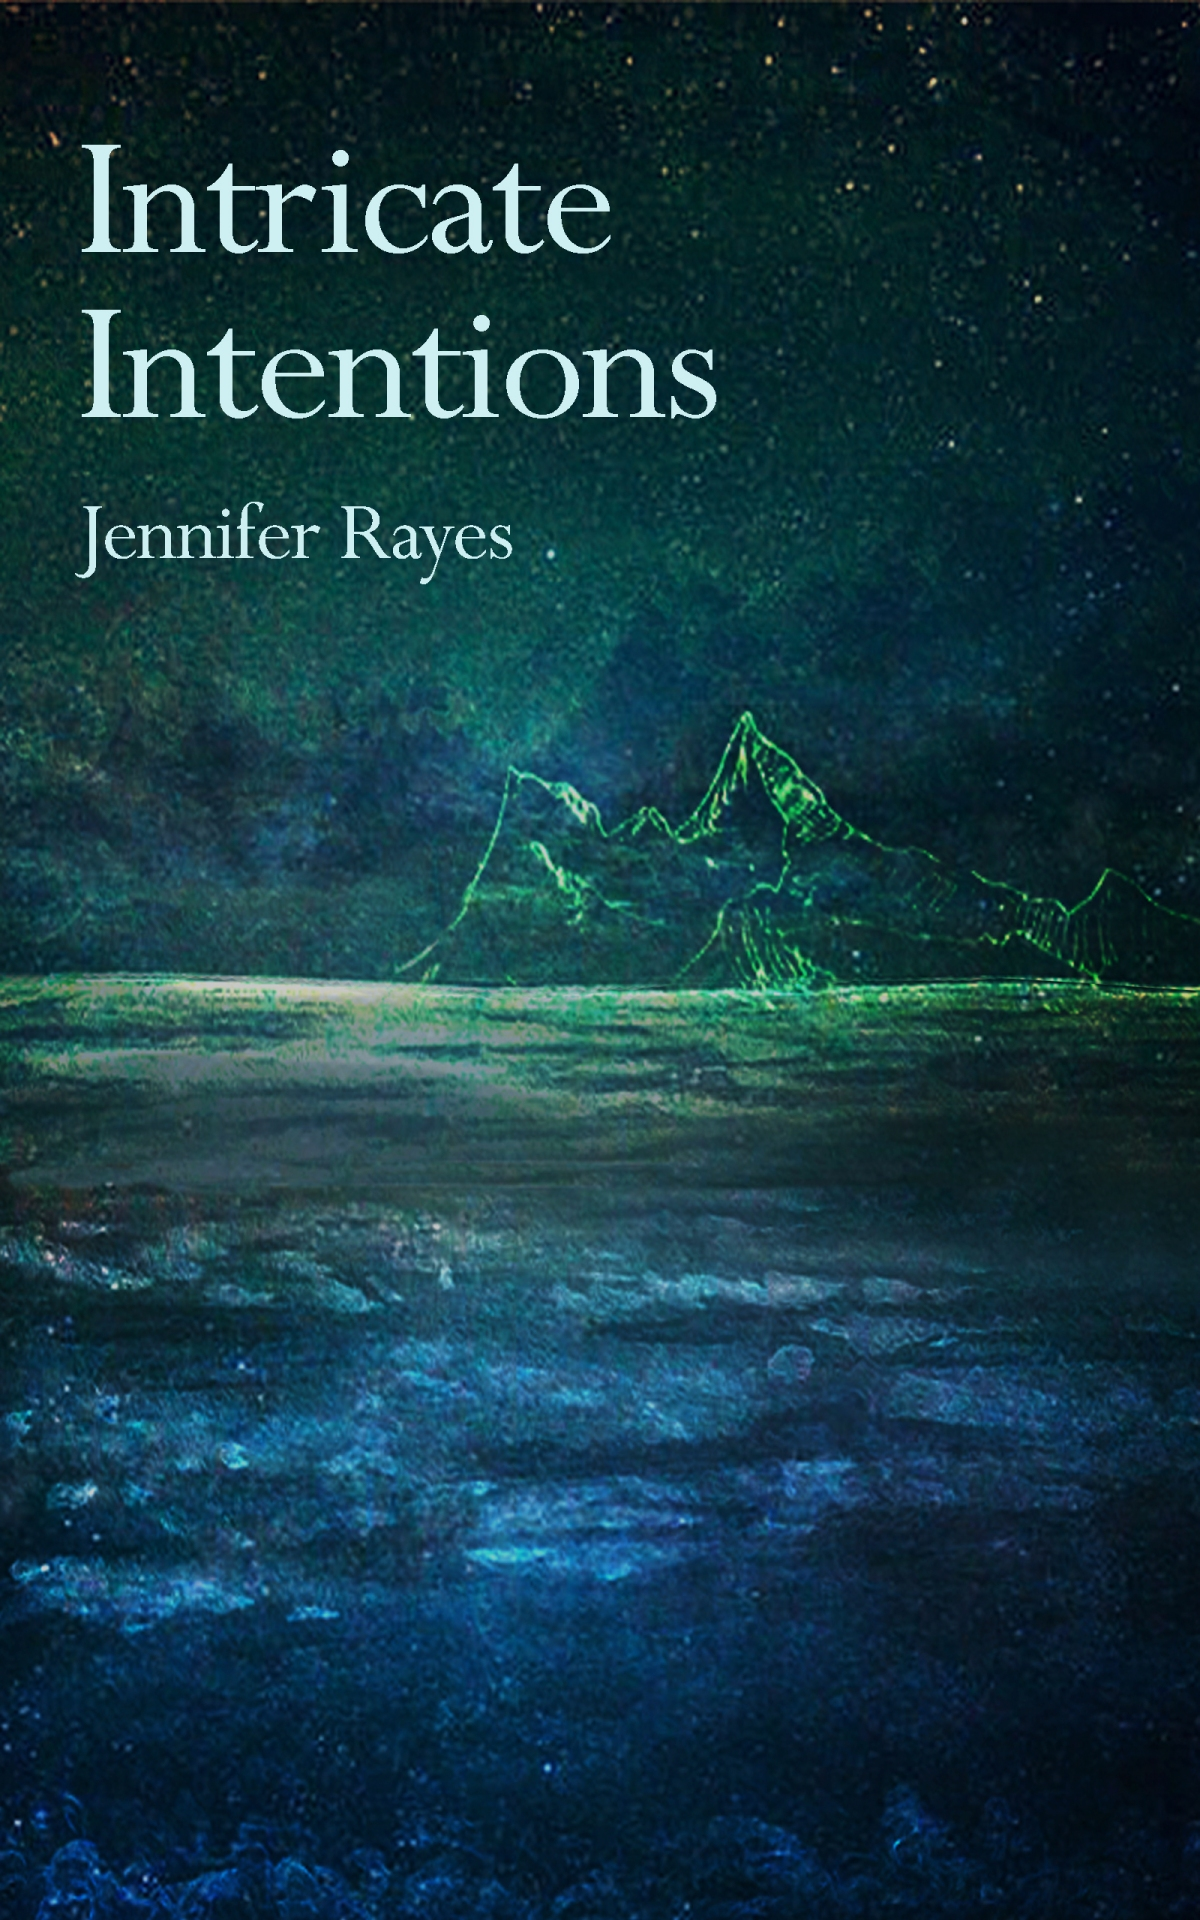 Interview with Author Jennifer Rayes